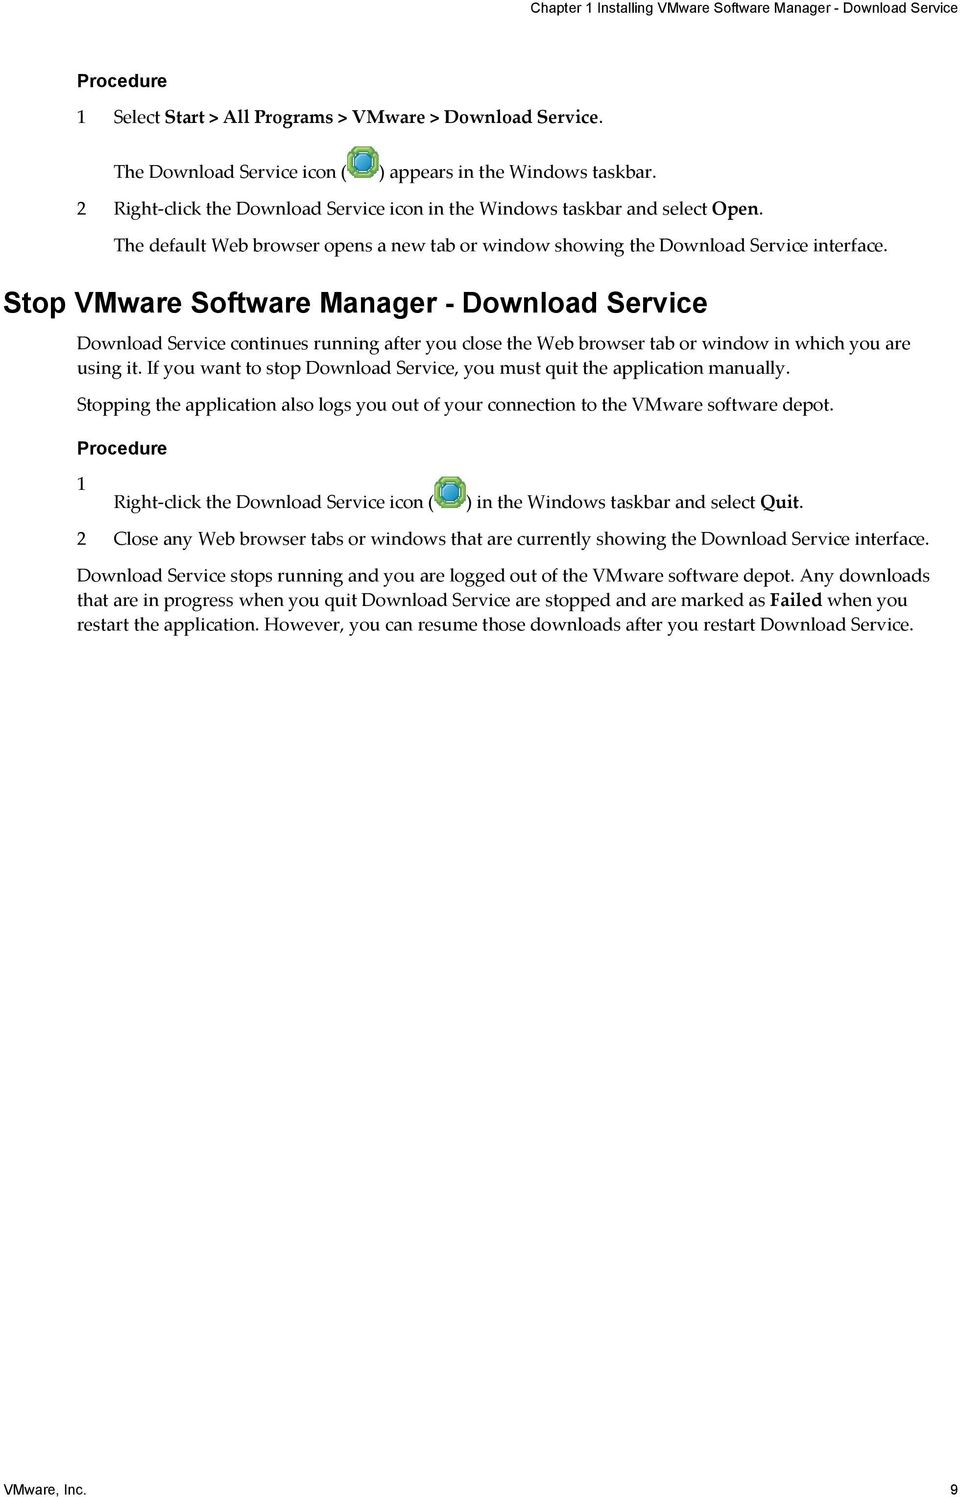 Stop VMware Software Manager - Download Service Download Service continues running after you close the Web browser tab or window in which you are using it.